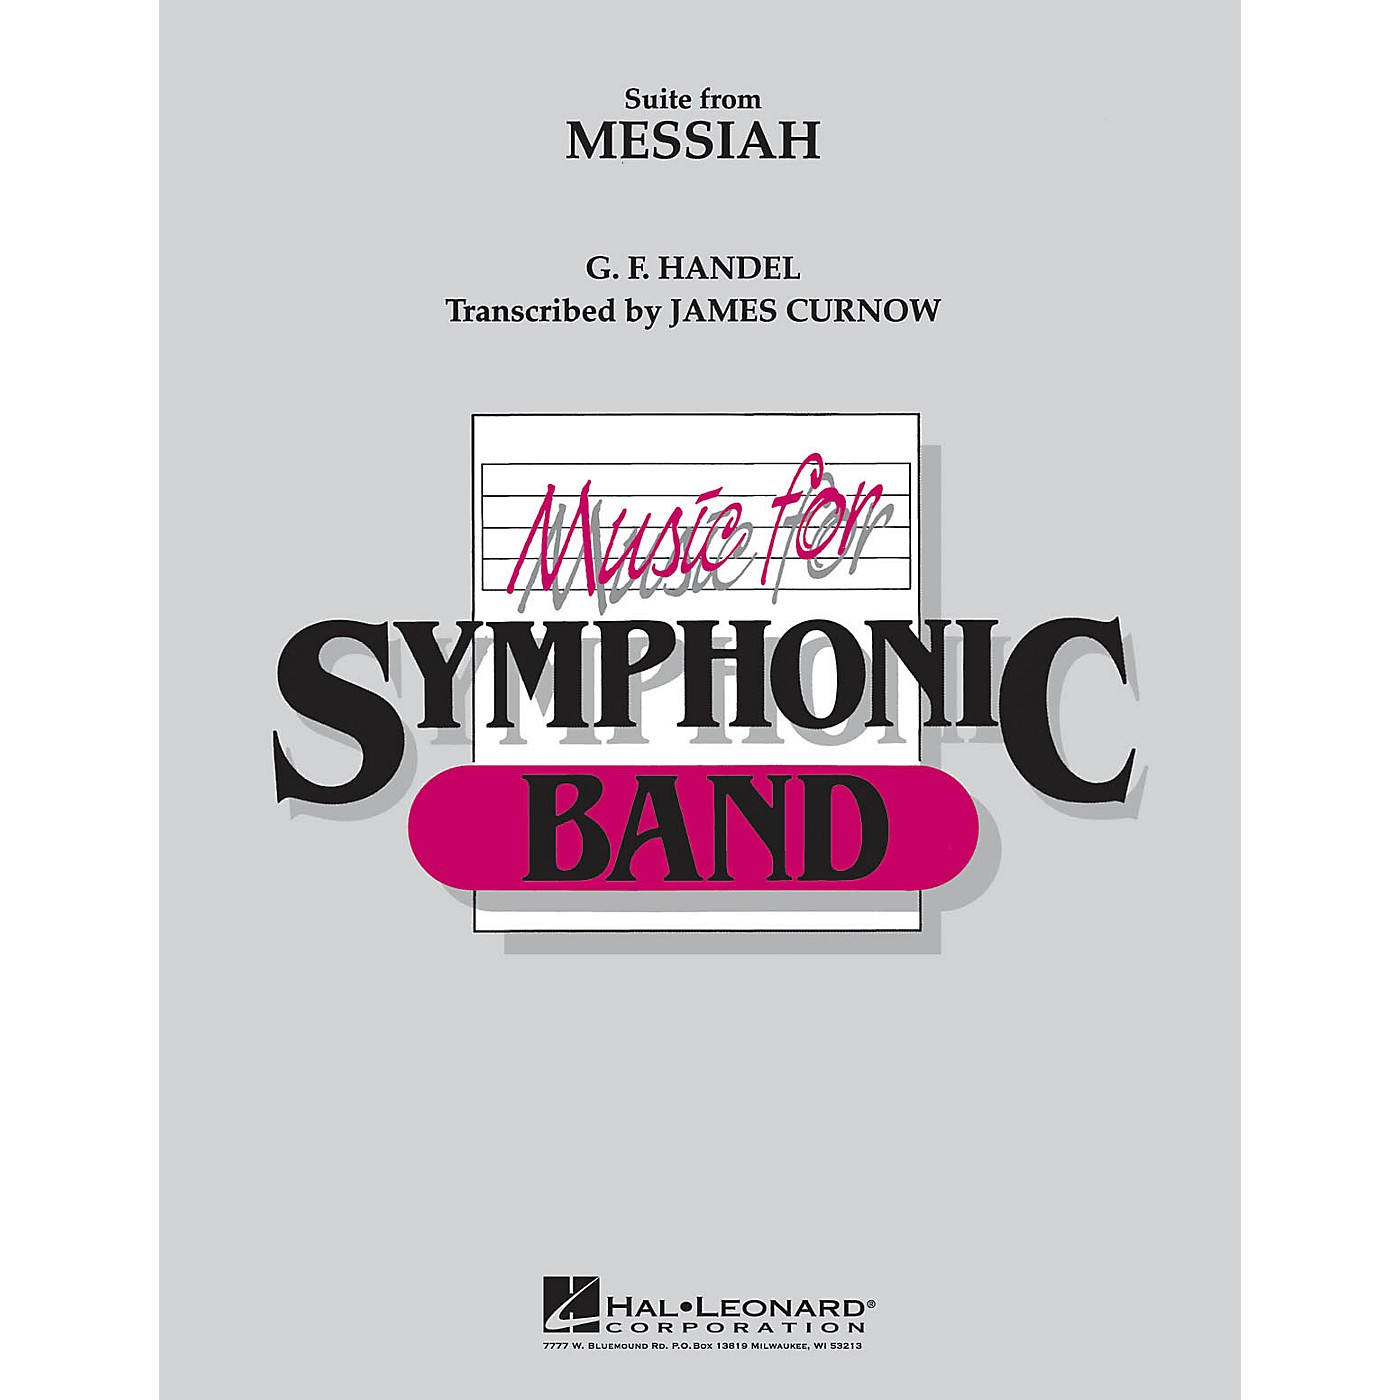 Hal Leonard Suite from Messiah Concert Band Level 4 Arranged by James Curnow thumbnail